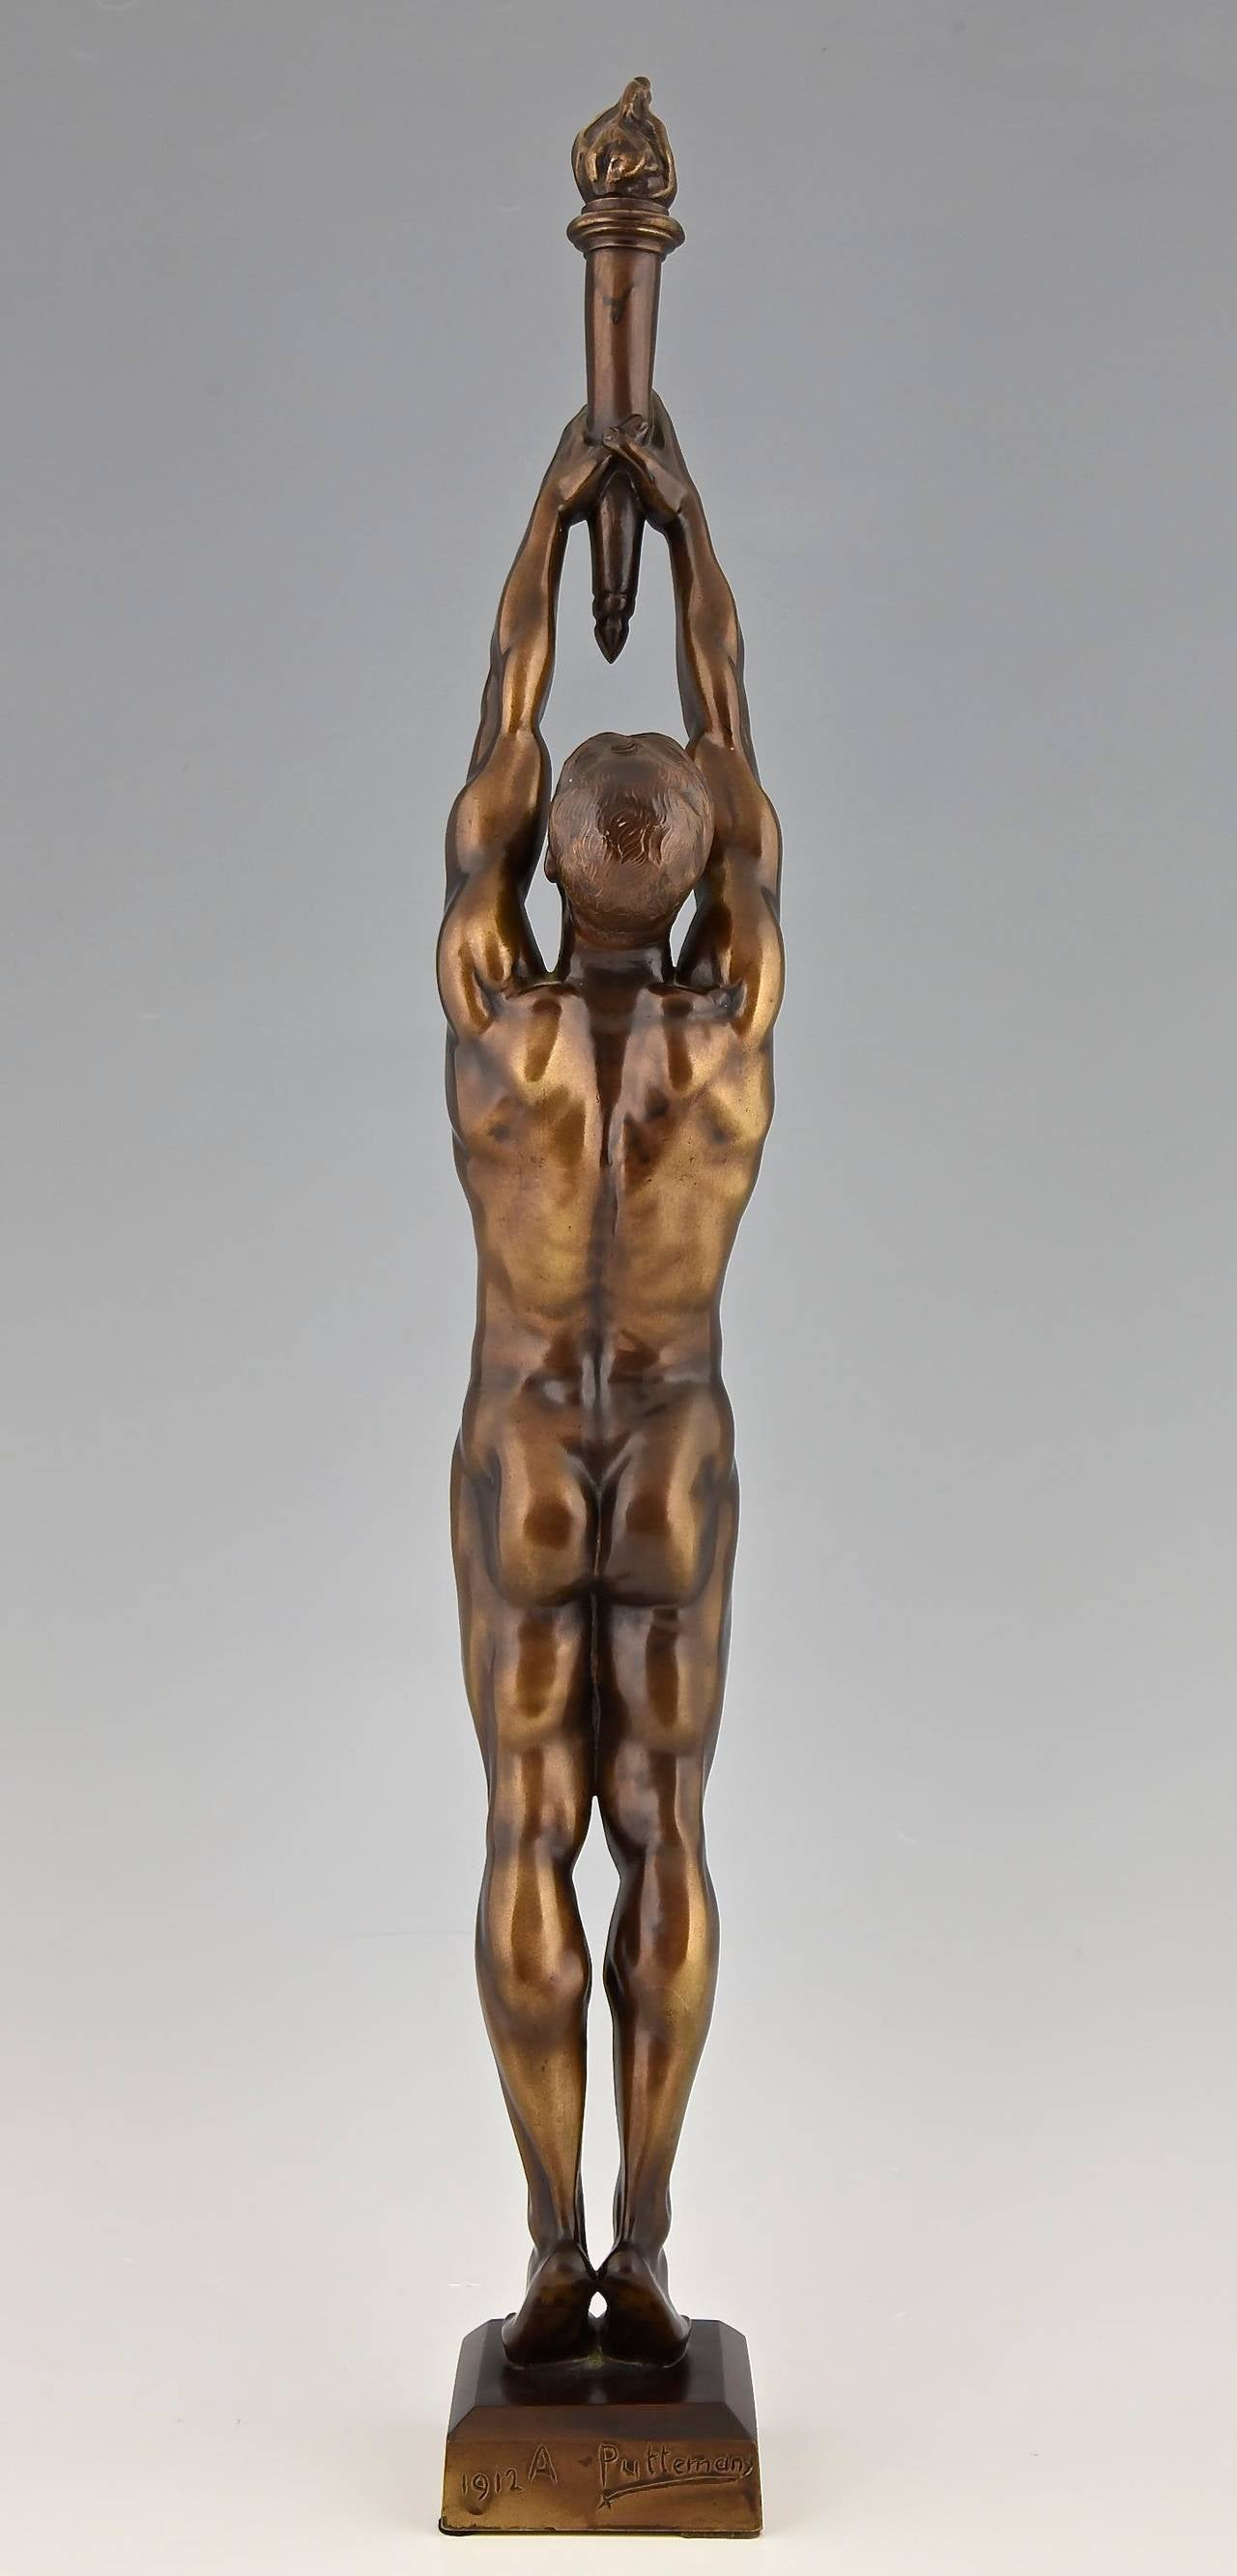 Patinated Bronze Sculpture of a Male Nude with Torch by A. Puttemans, Belgium, 1912